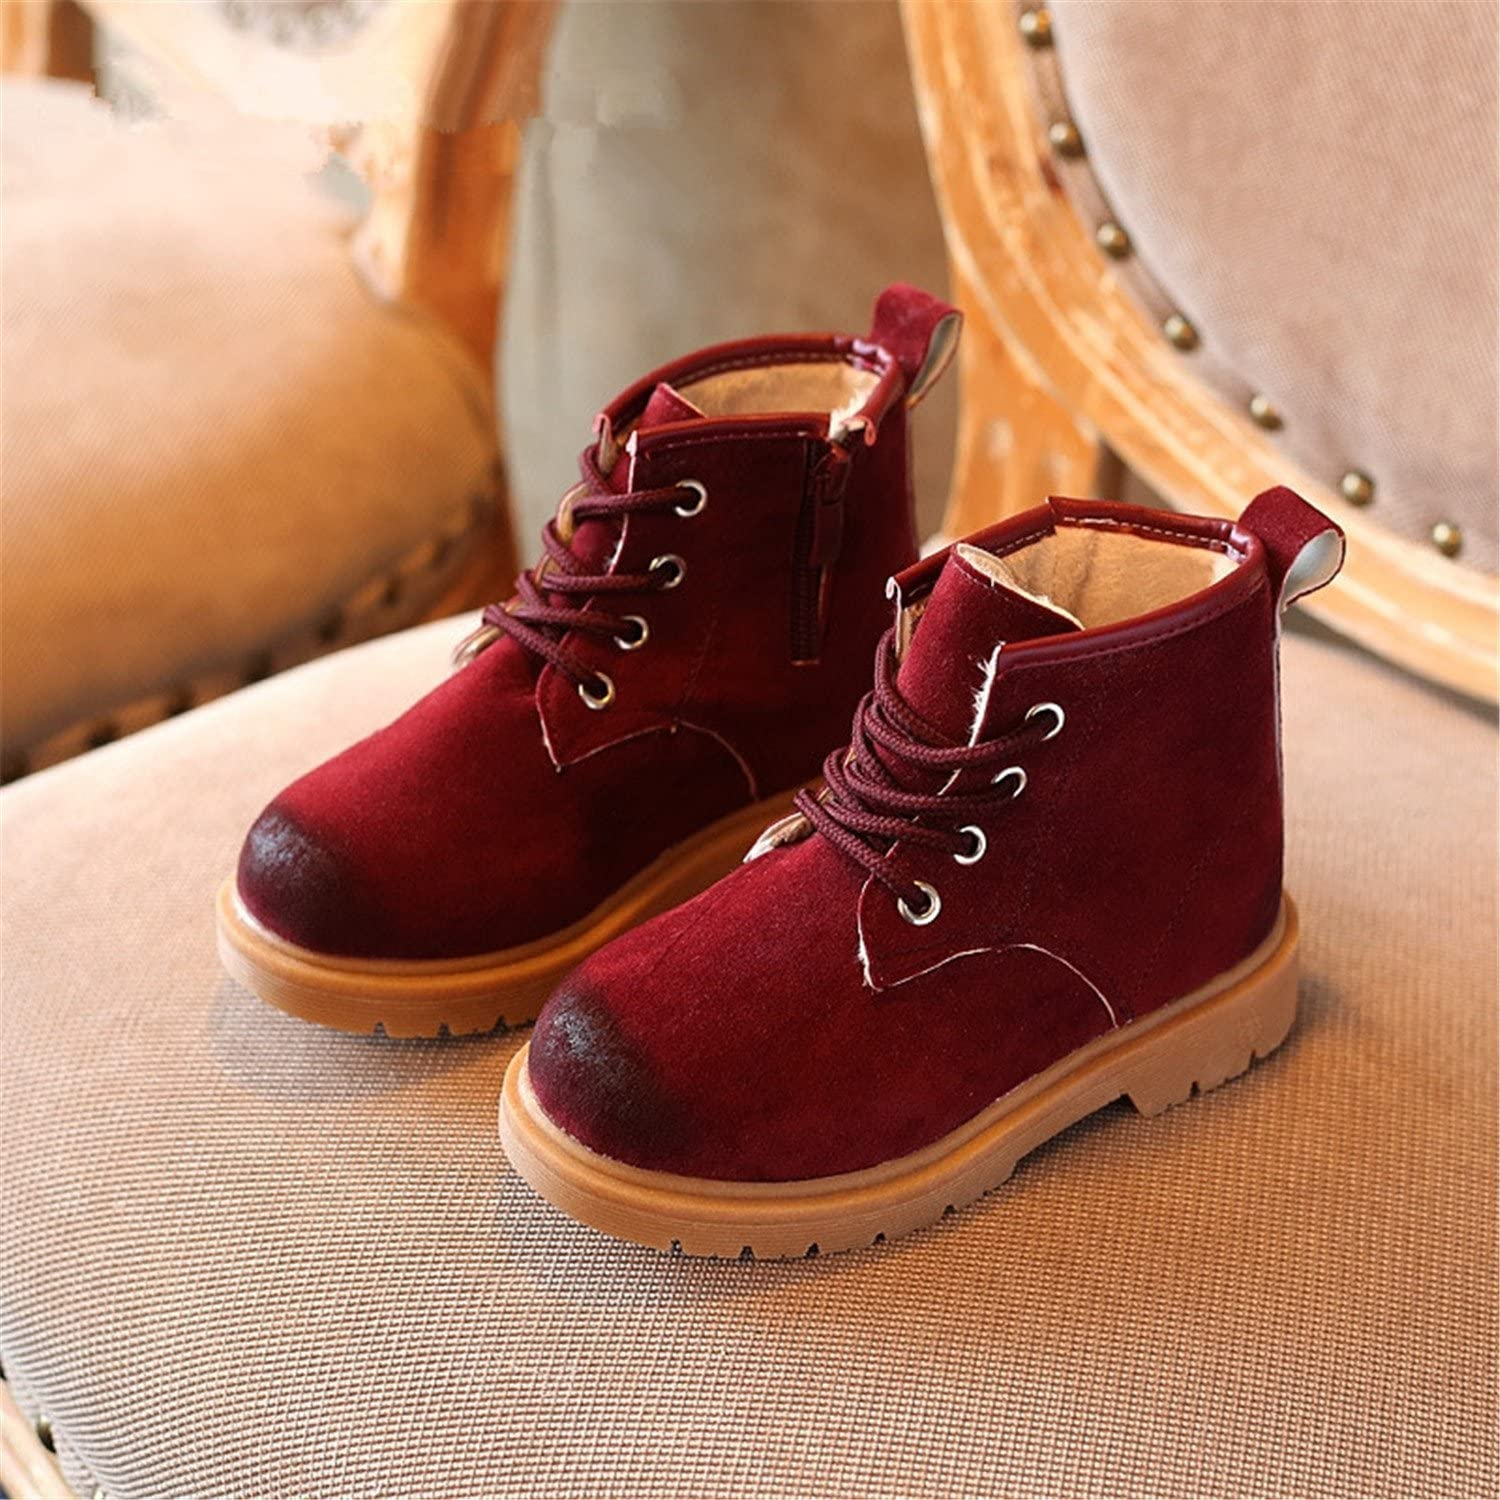 Kids Winter Plush Snow Boots Girls Boys Boots Children Ankle Boots Shoes